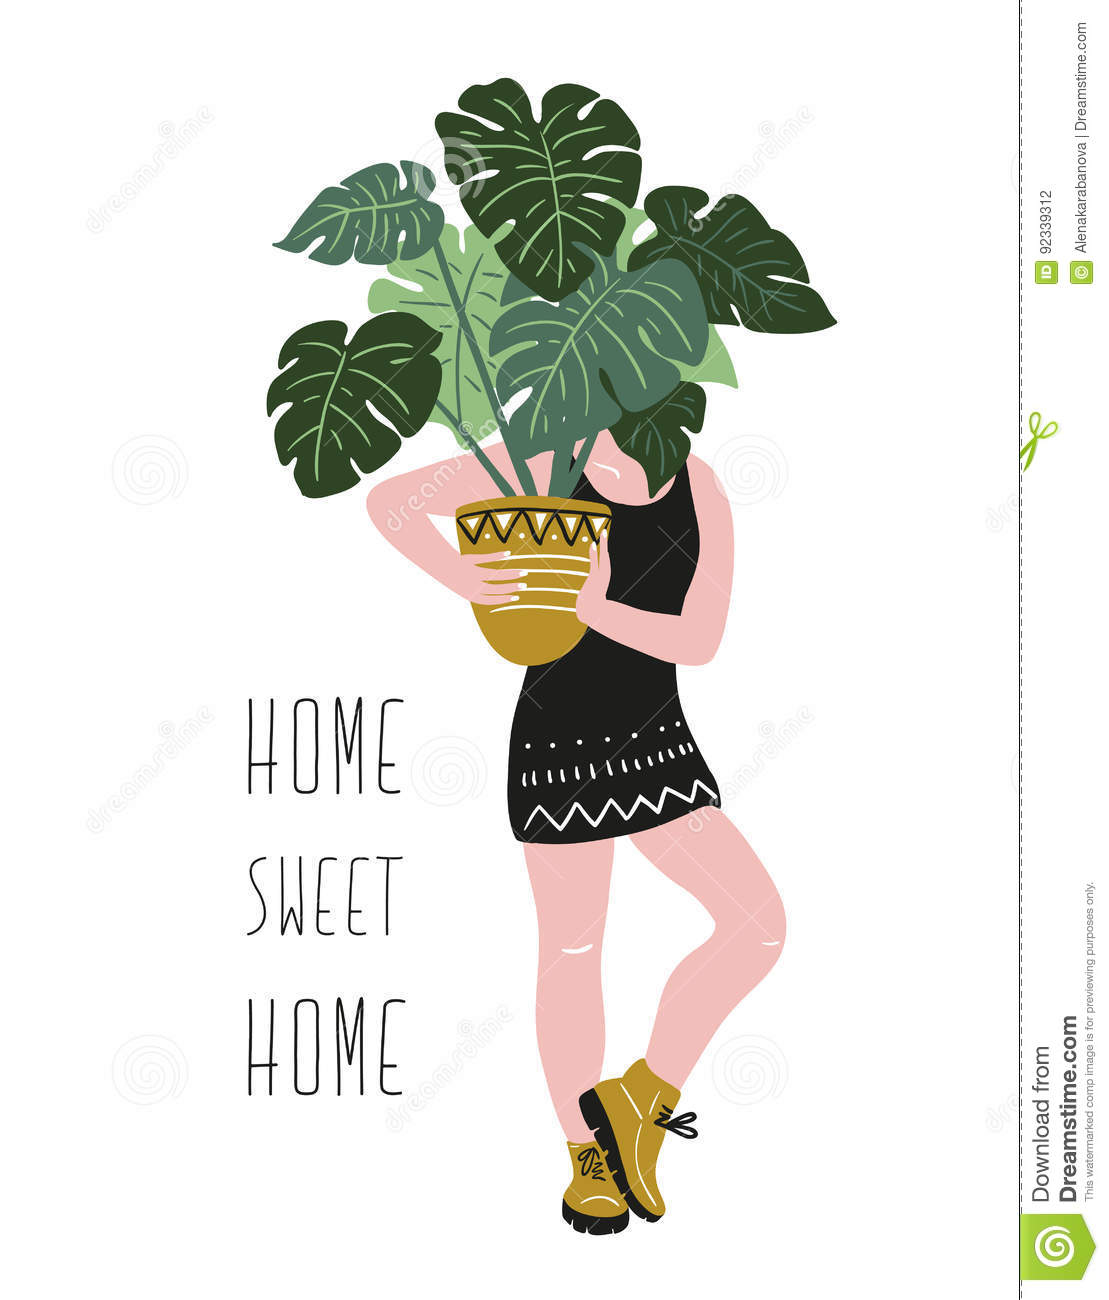 Poster with young woman cultivating home tropical plants and text - `Home sweet home`. Hand drawn vector illustration.